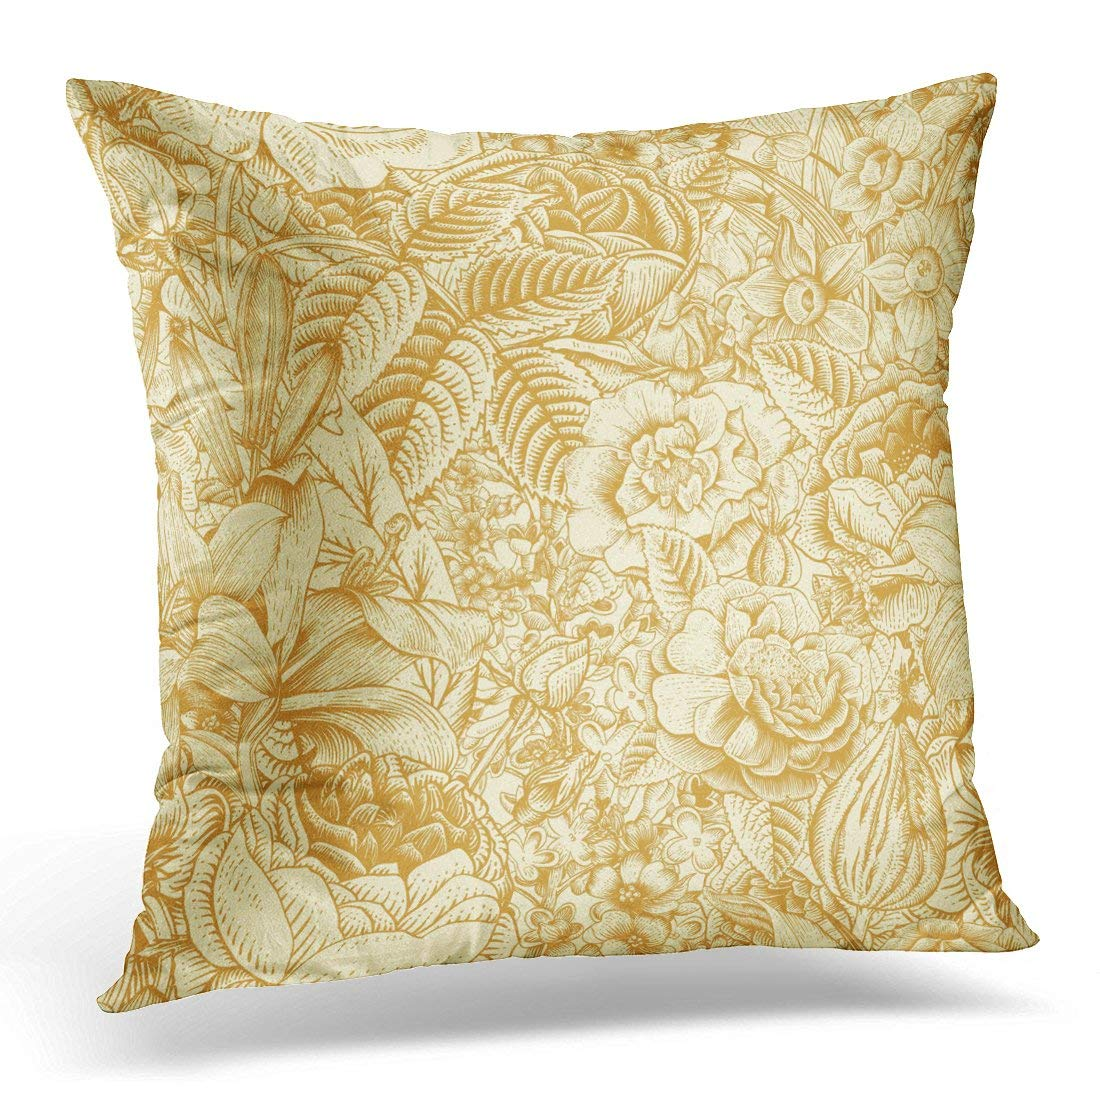 USART Brown Summer Floral Pattern Vintage Flowers Gold on Beige Roses Lilies Daffodils Tulips and Delphinium Pillow Case Pillow Cover 20x20 inch